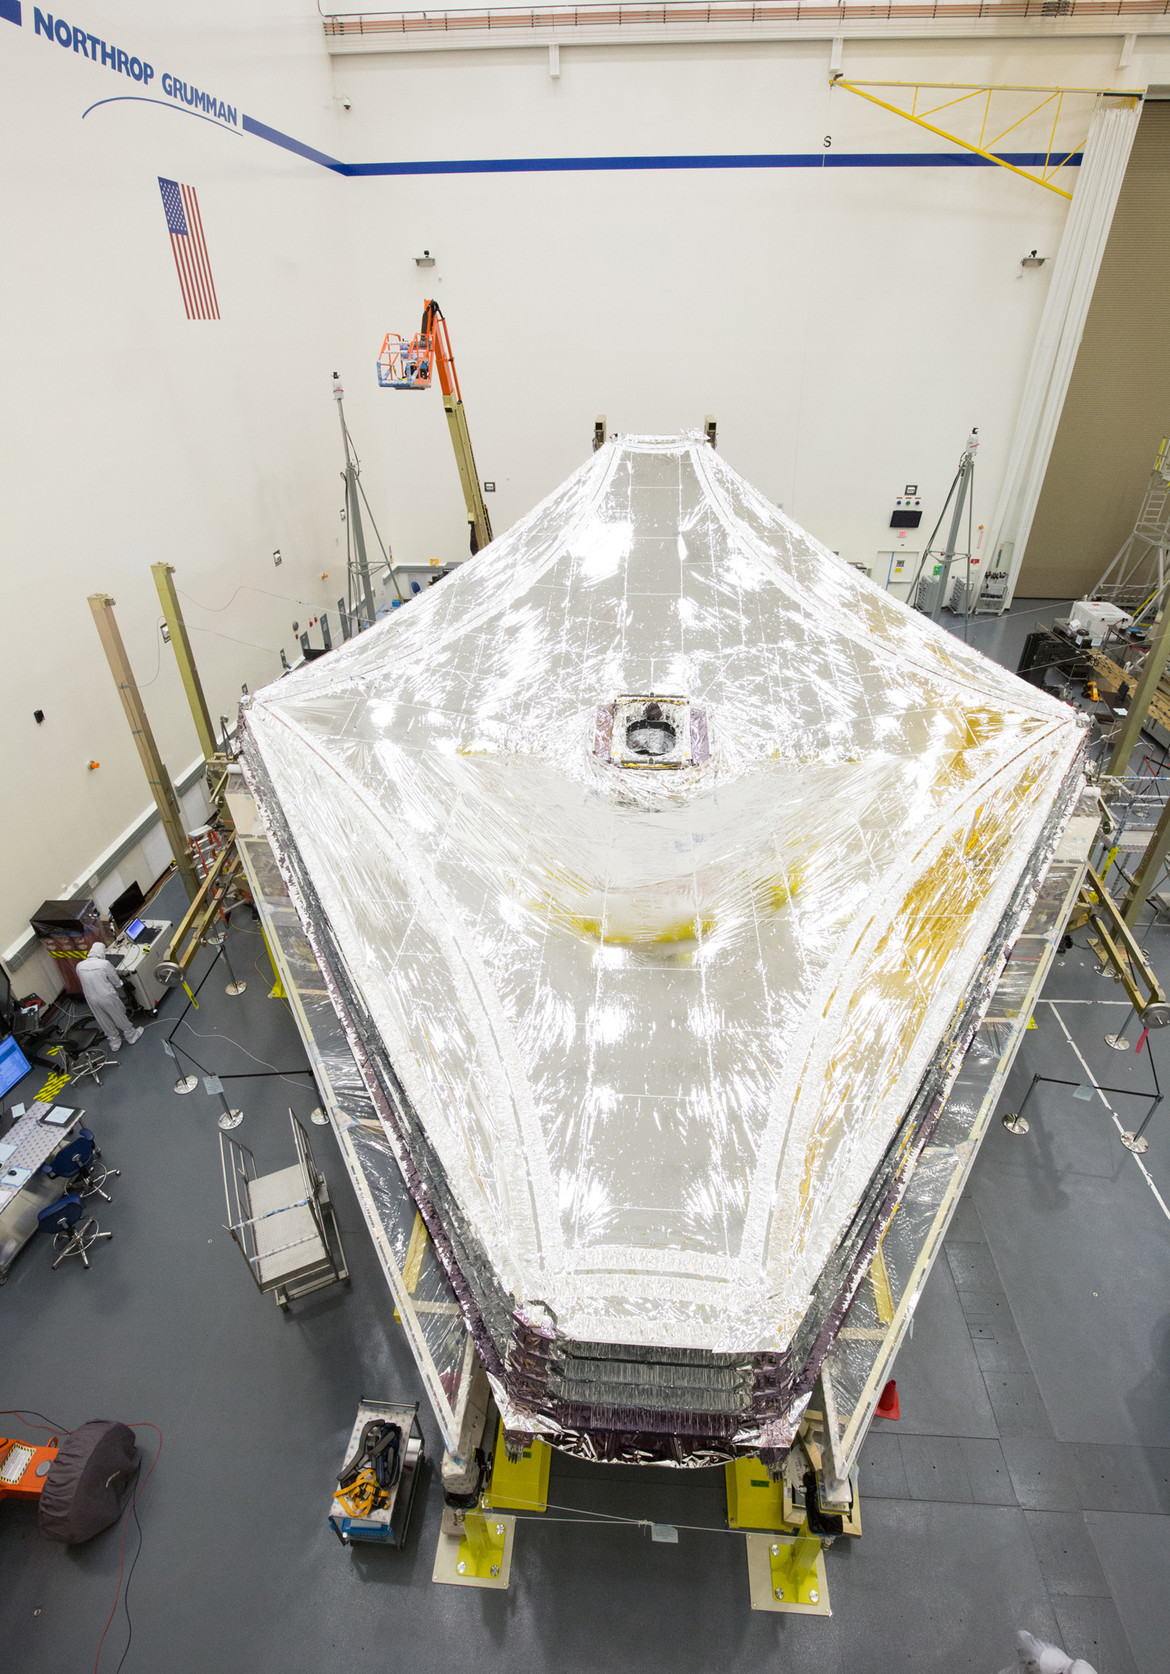 The fully-deployed and under-tension sunshield for JWST in a clean room in California. Credit: Northrup Grumman